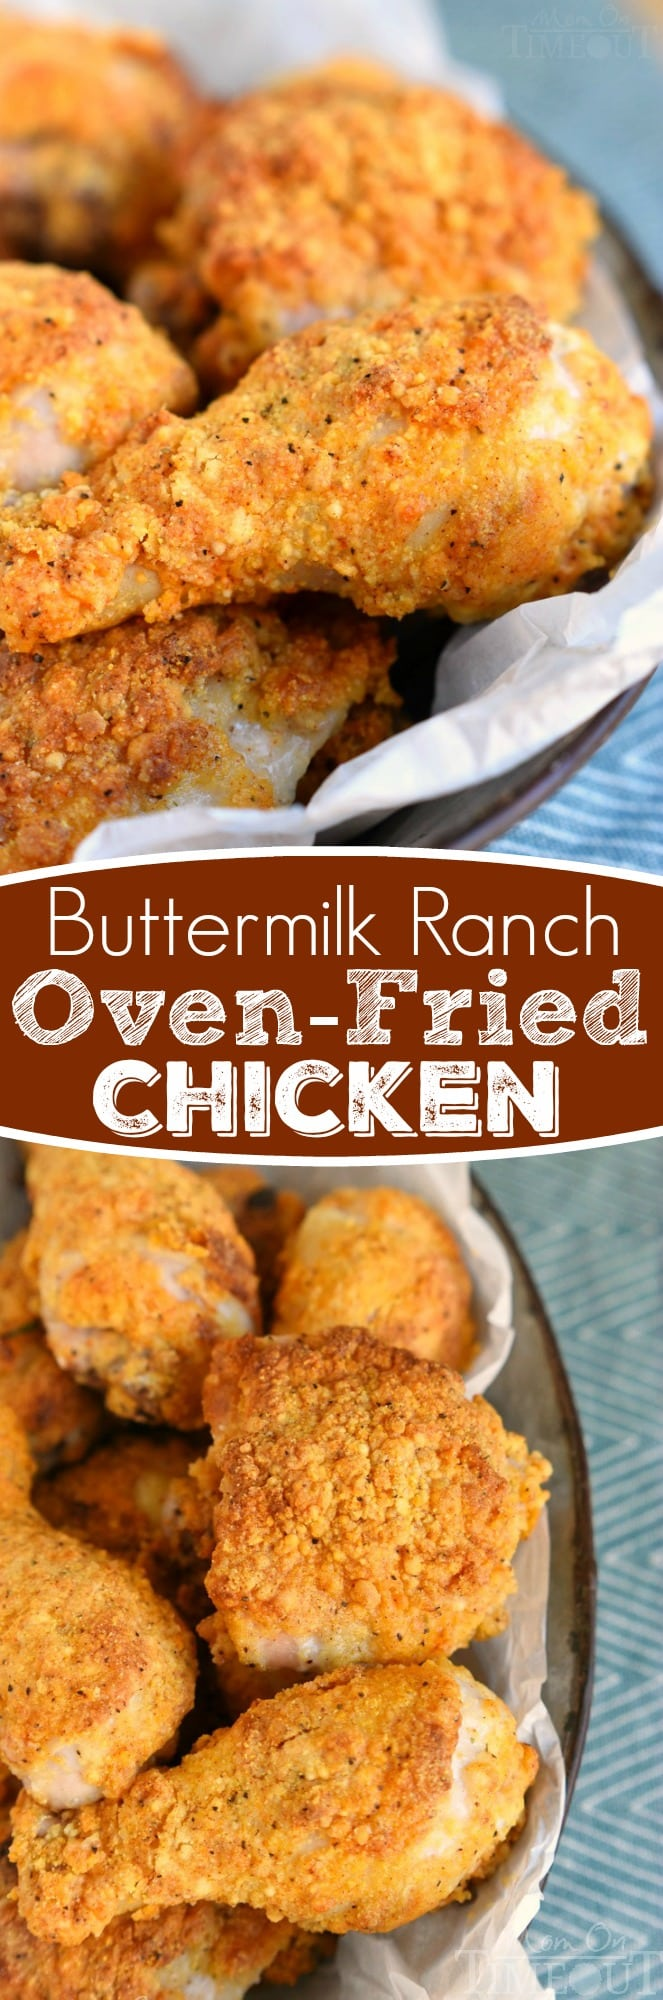 oven-fried-chicken-marinated-buttermilk-ranch